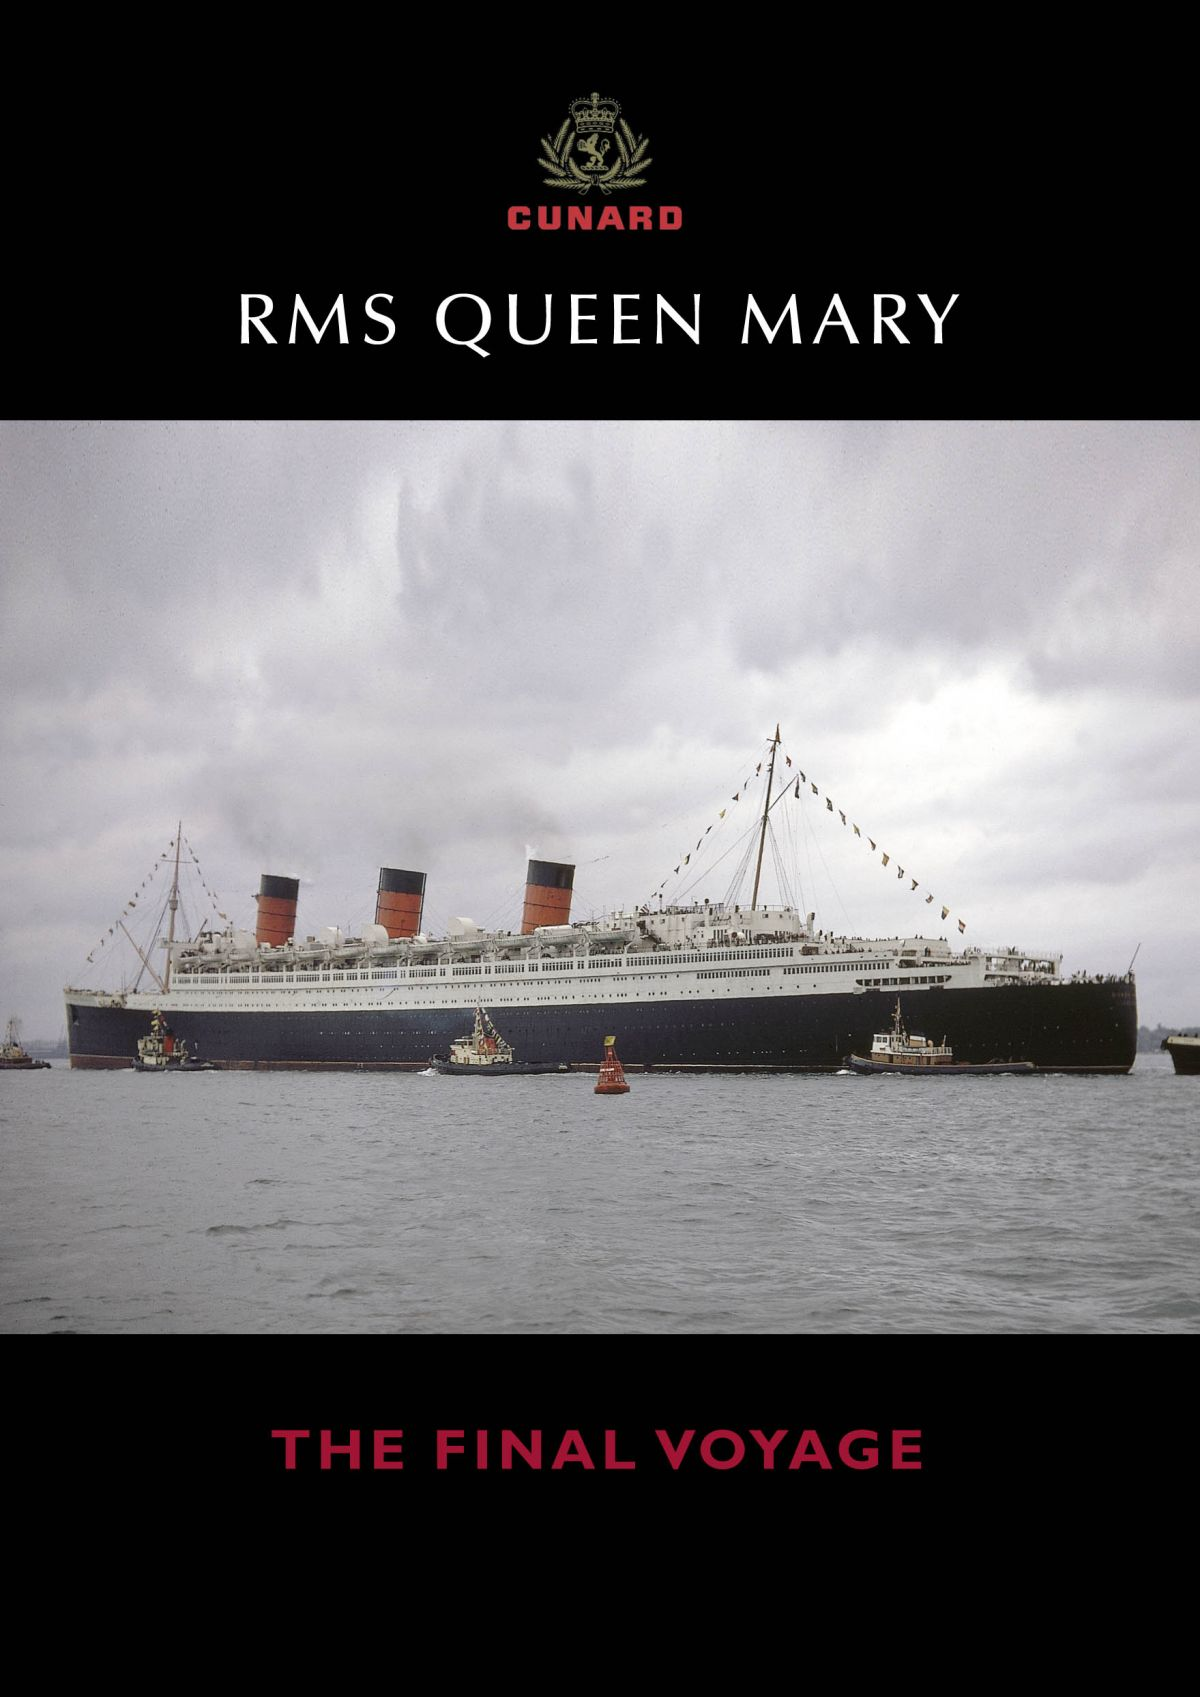 Experience The Queen Mary  A Historic Long Beach Hotel featuring Art Deco Staterooms Tours Events We hope you enjoy your stay aboard the Queen Mary and take advantage of all the wonderful sites The Queen Marys creation and launch was nothing if not extraordinary and her story is rich with history elegance and grandeur